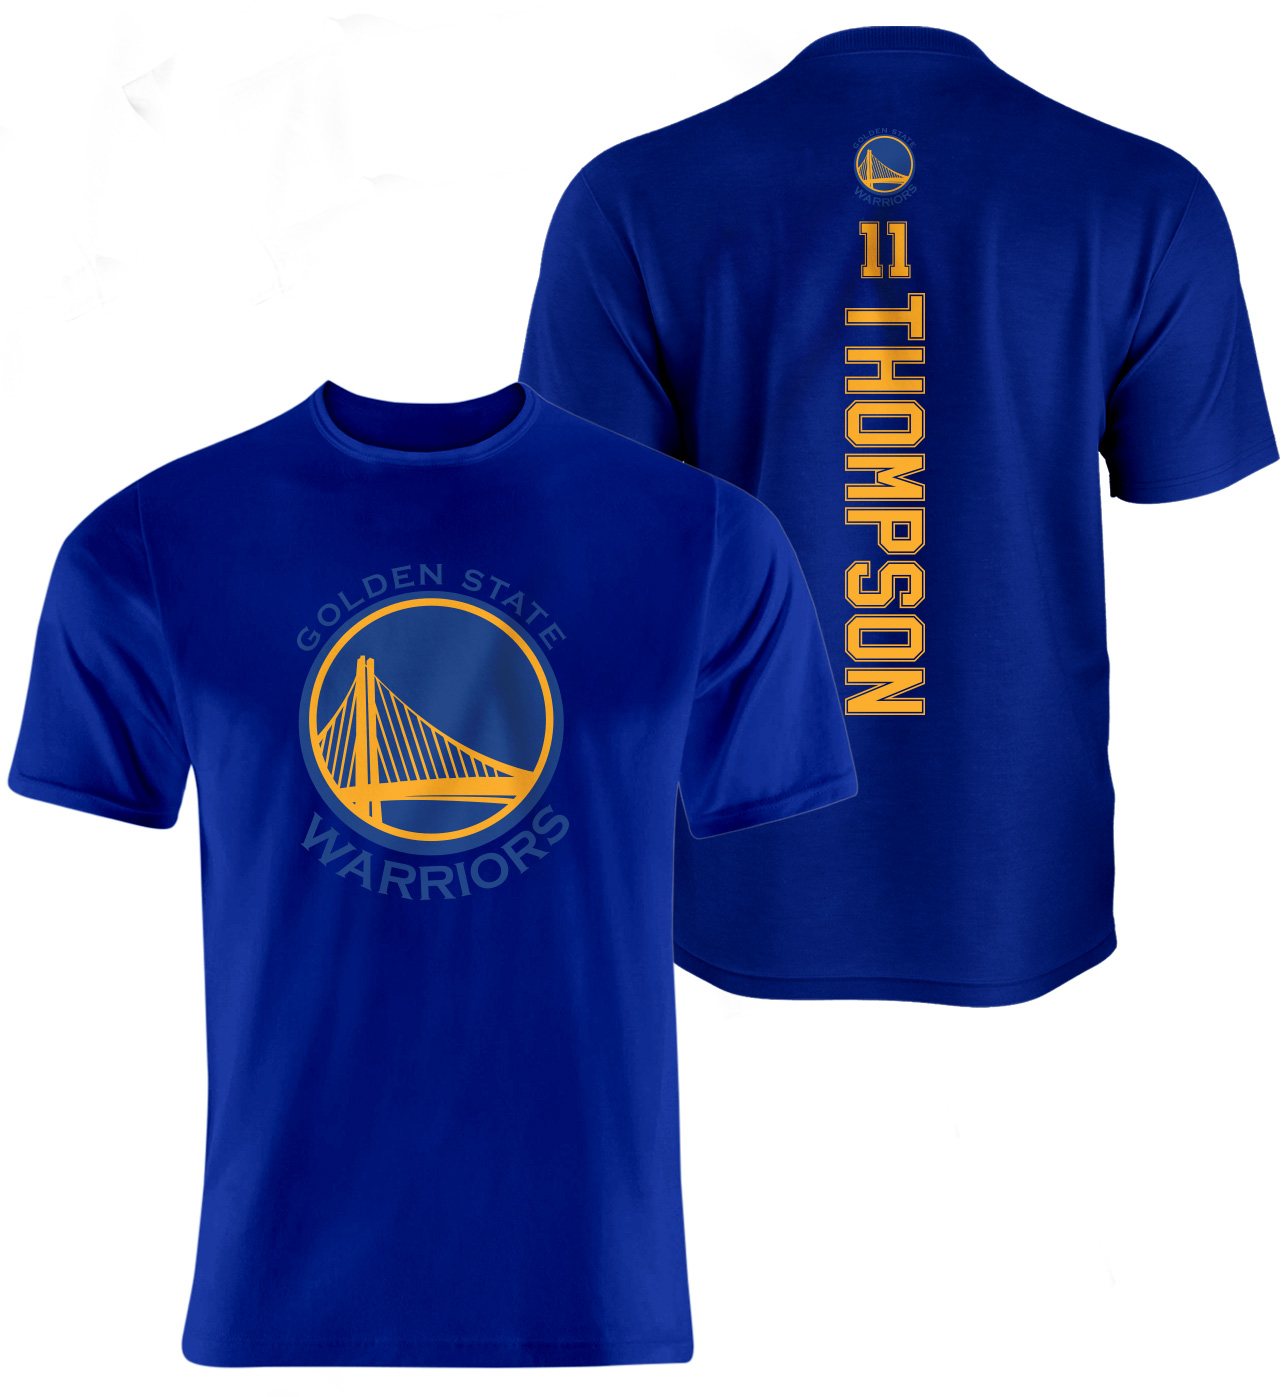 Golden State Warriors Klay Thompson Vertical Tshirt (TSH-blue-096-PLYR-GSW-THOMPSON.VER)